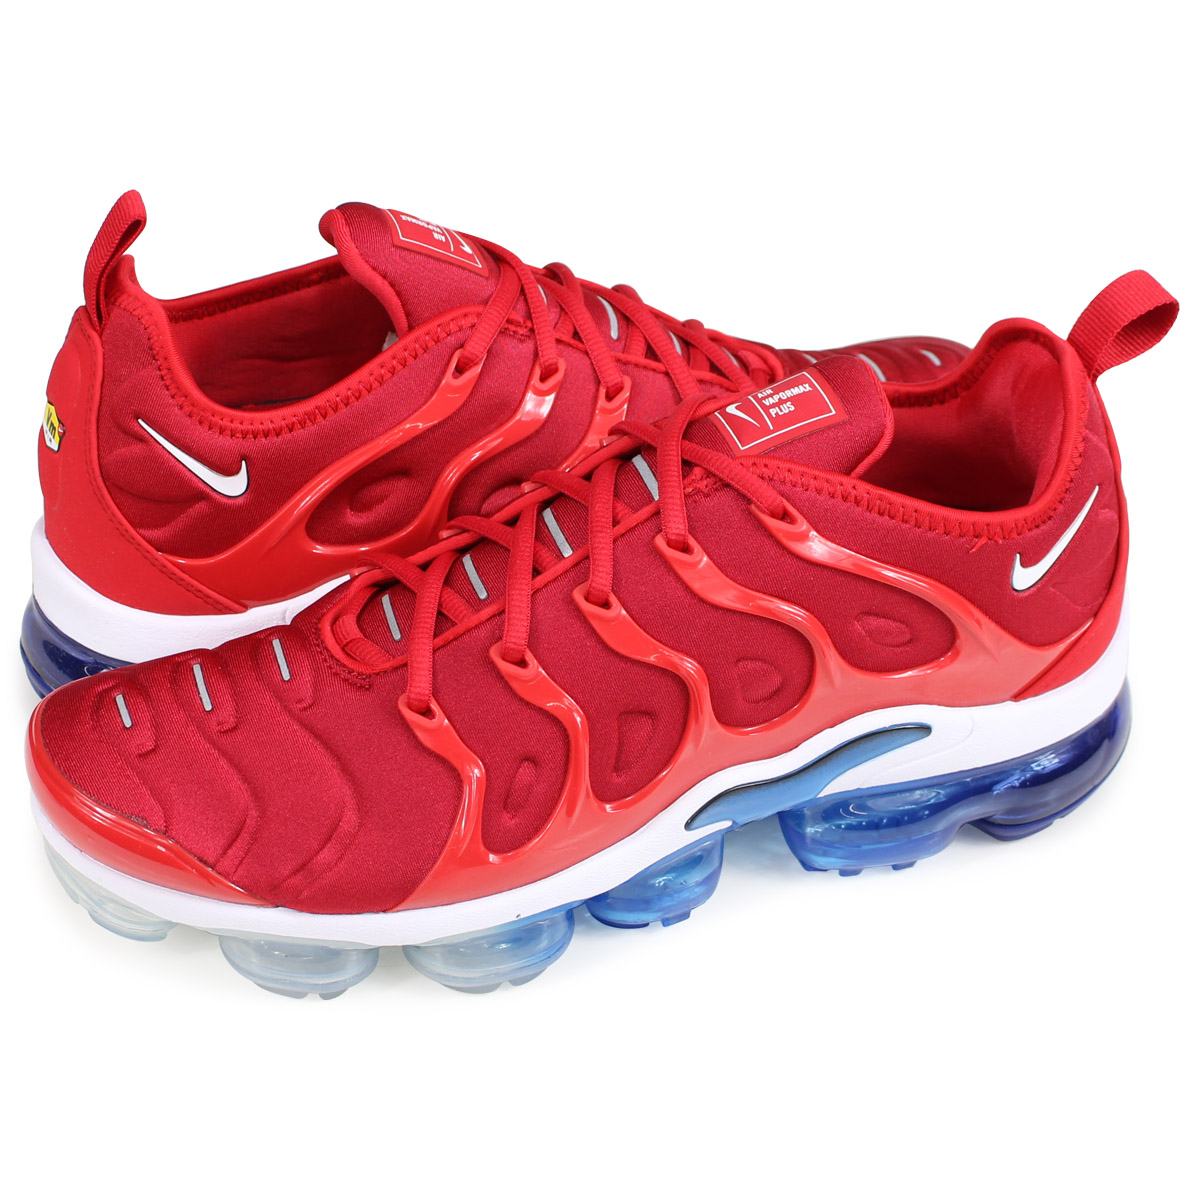 86d14059c5dc6 Whats up Sports  NIKE AIR VAPORMAX PLUS Nike air vapor max plus ...